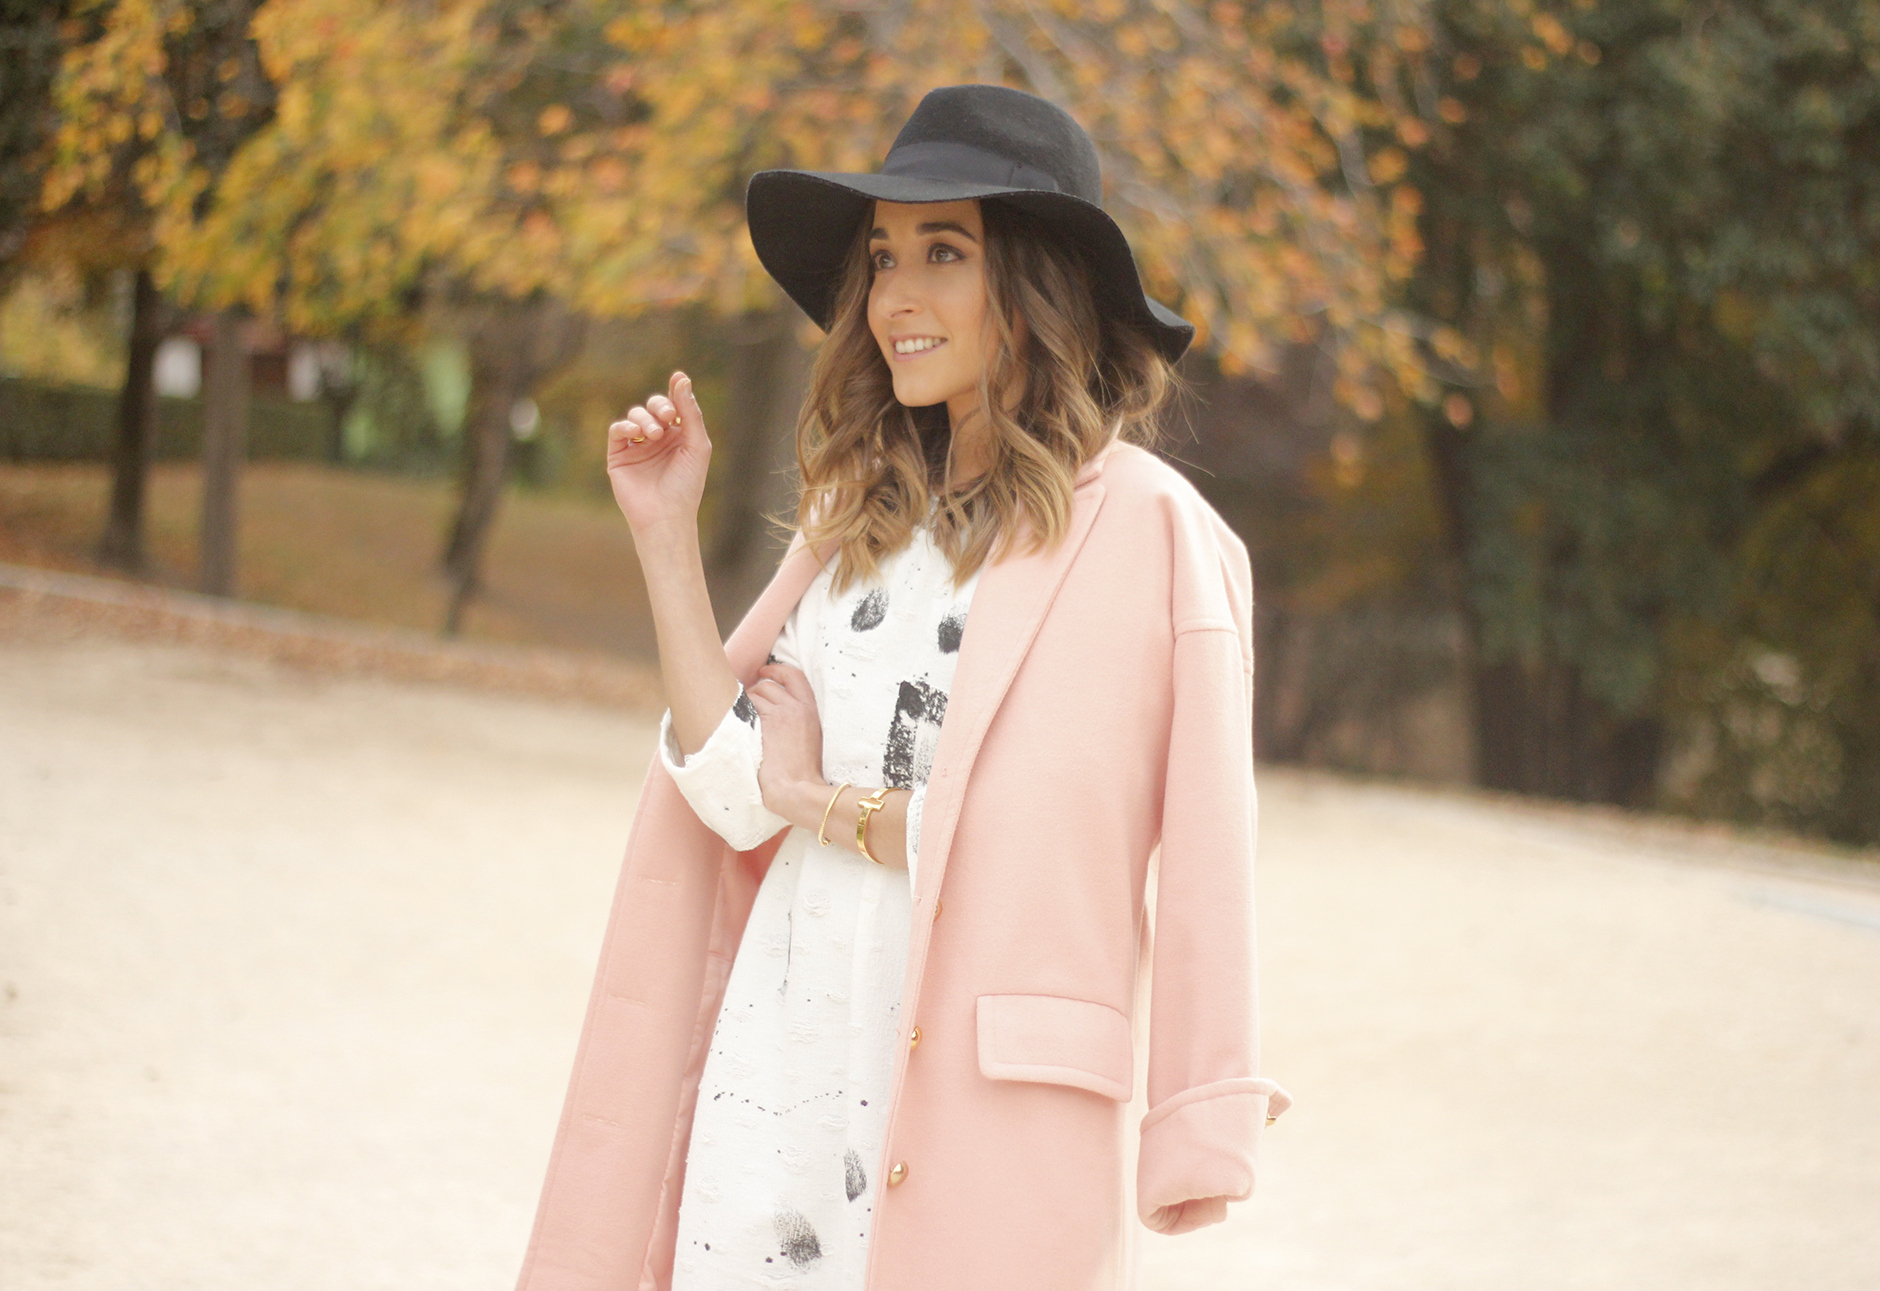 Black and White Dress Pink Coat Black Hat outfit style over the knees boots26